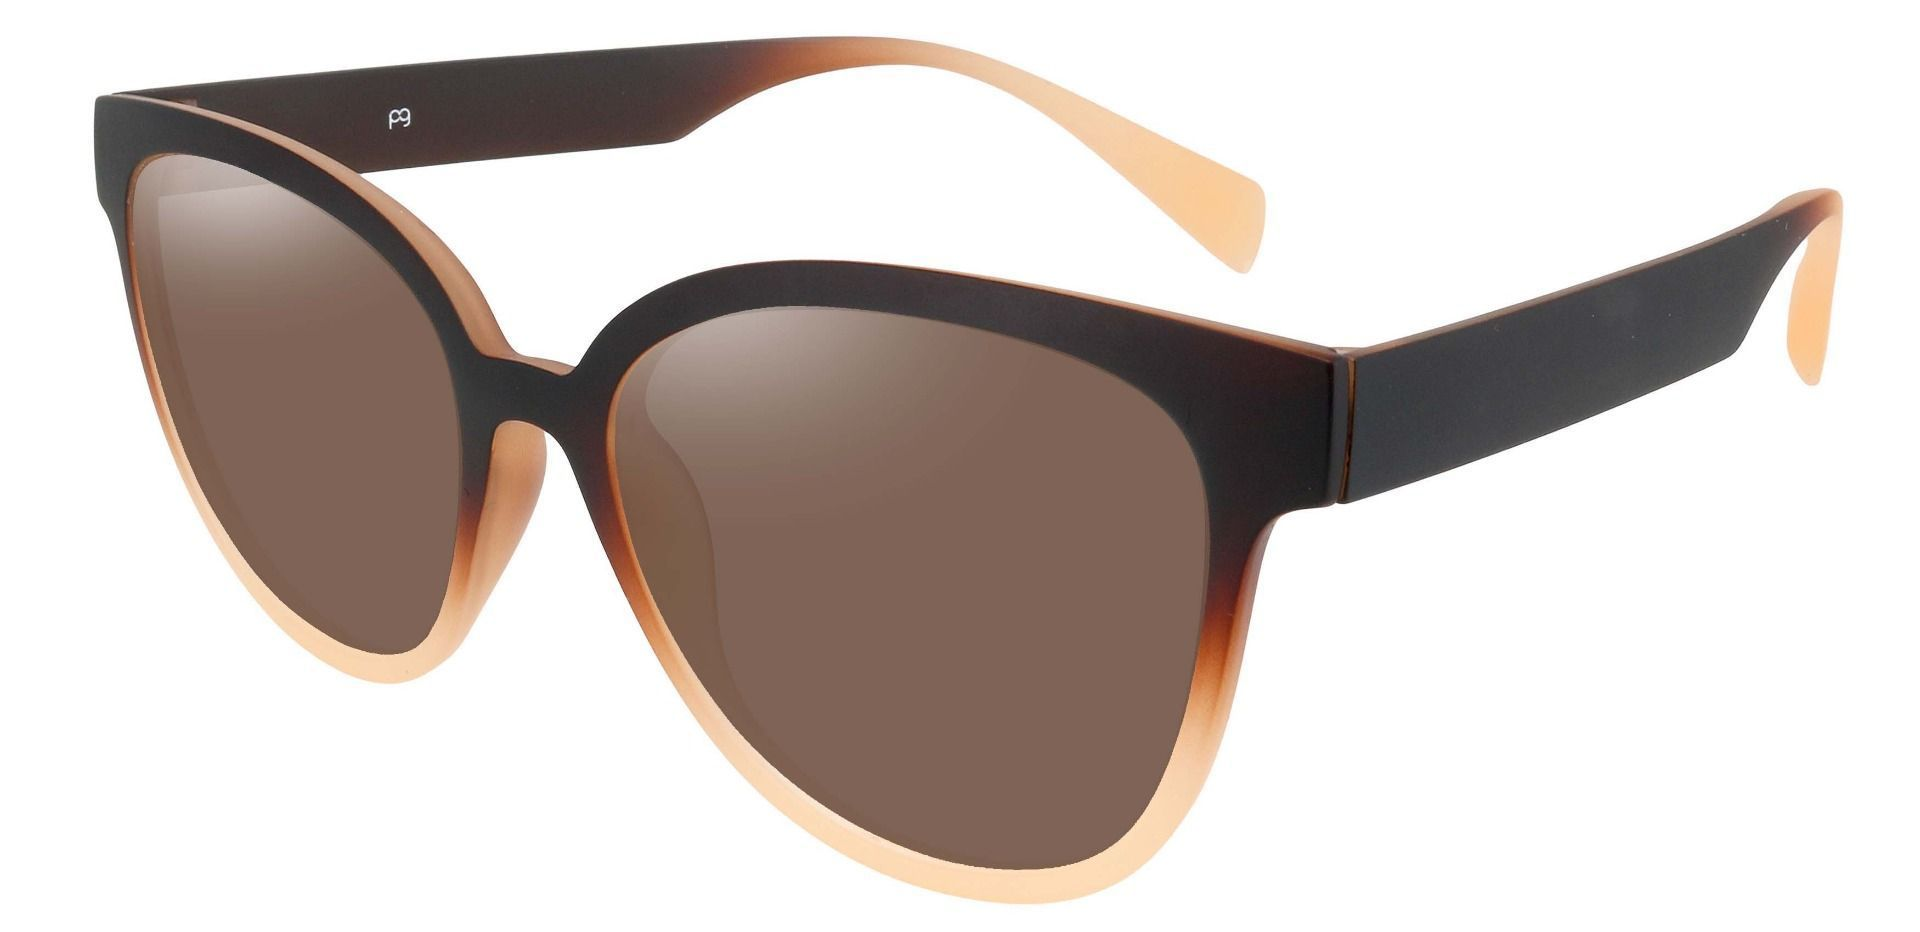 Newport Oval Non-Rx Sunglasses - Brown Frame With Brown Lenses